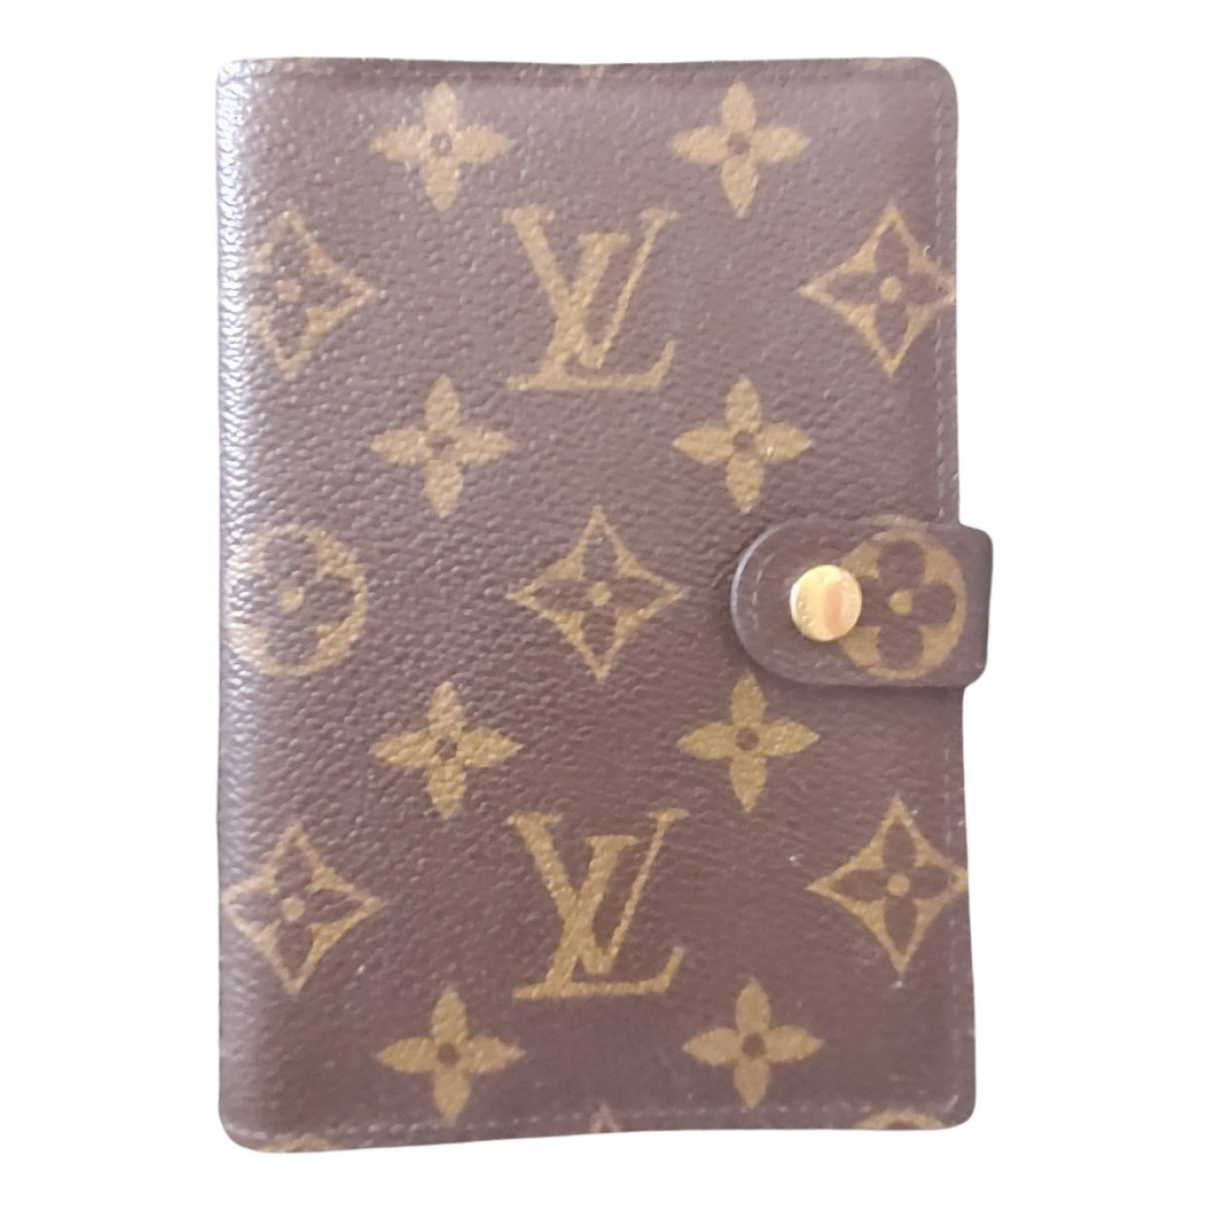 Agenda de Lona Louis Vuitton